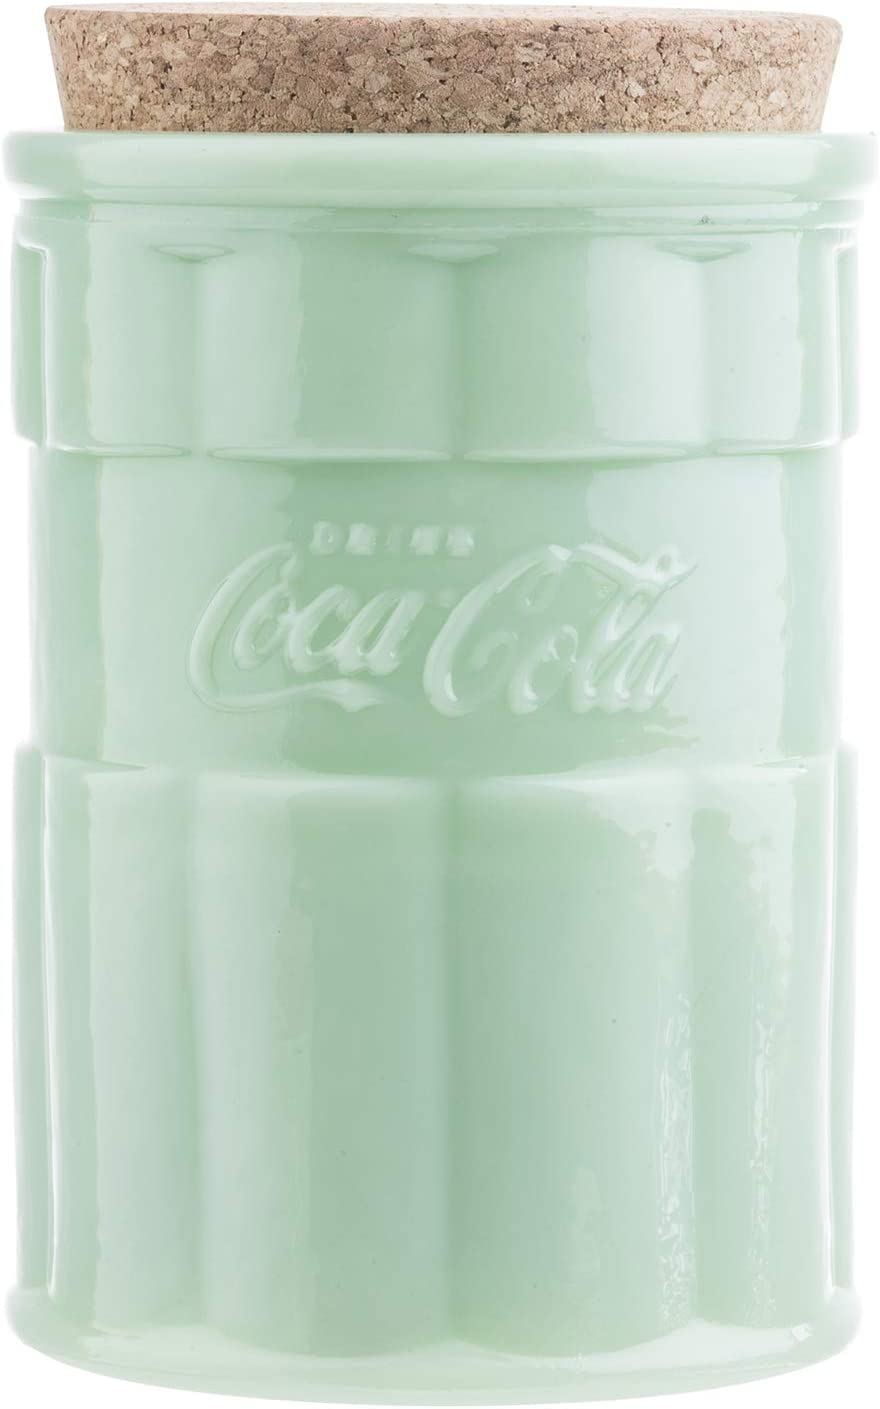 Coca-Cola Jadeite Medium Canister with Lid 4.5x 4.5x 7'', Green